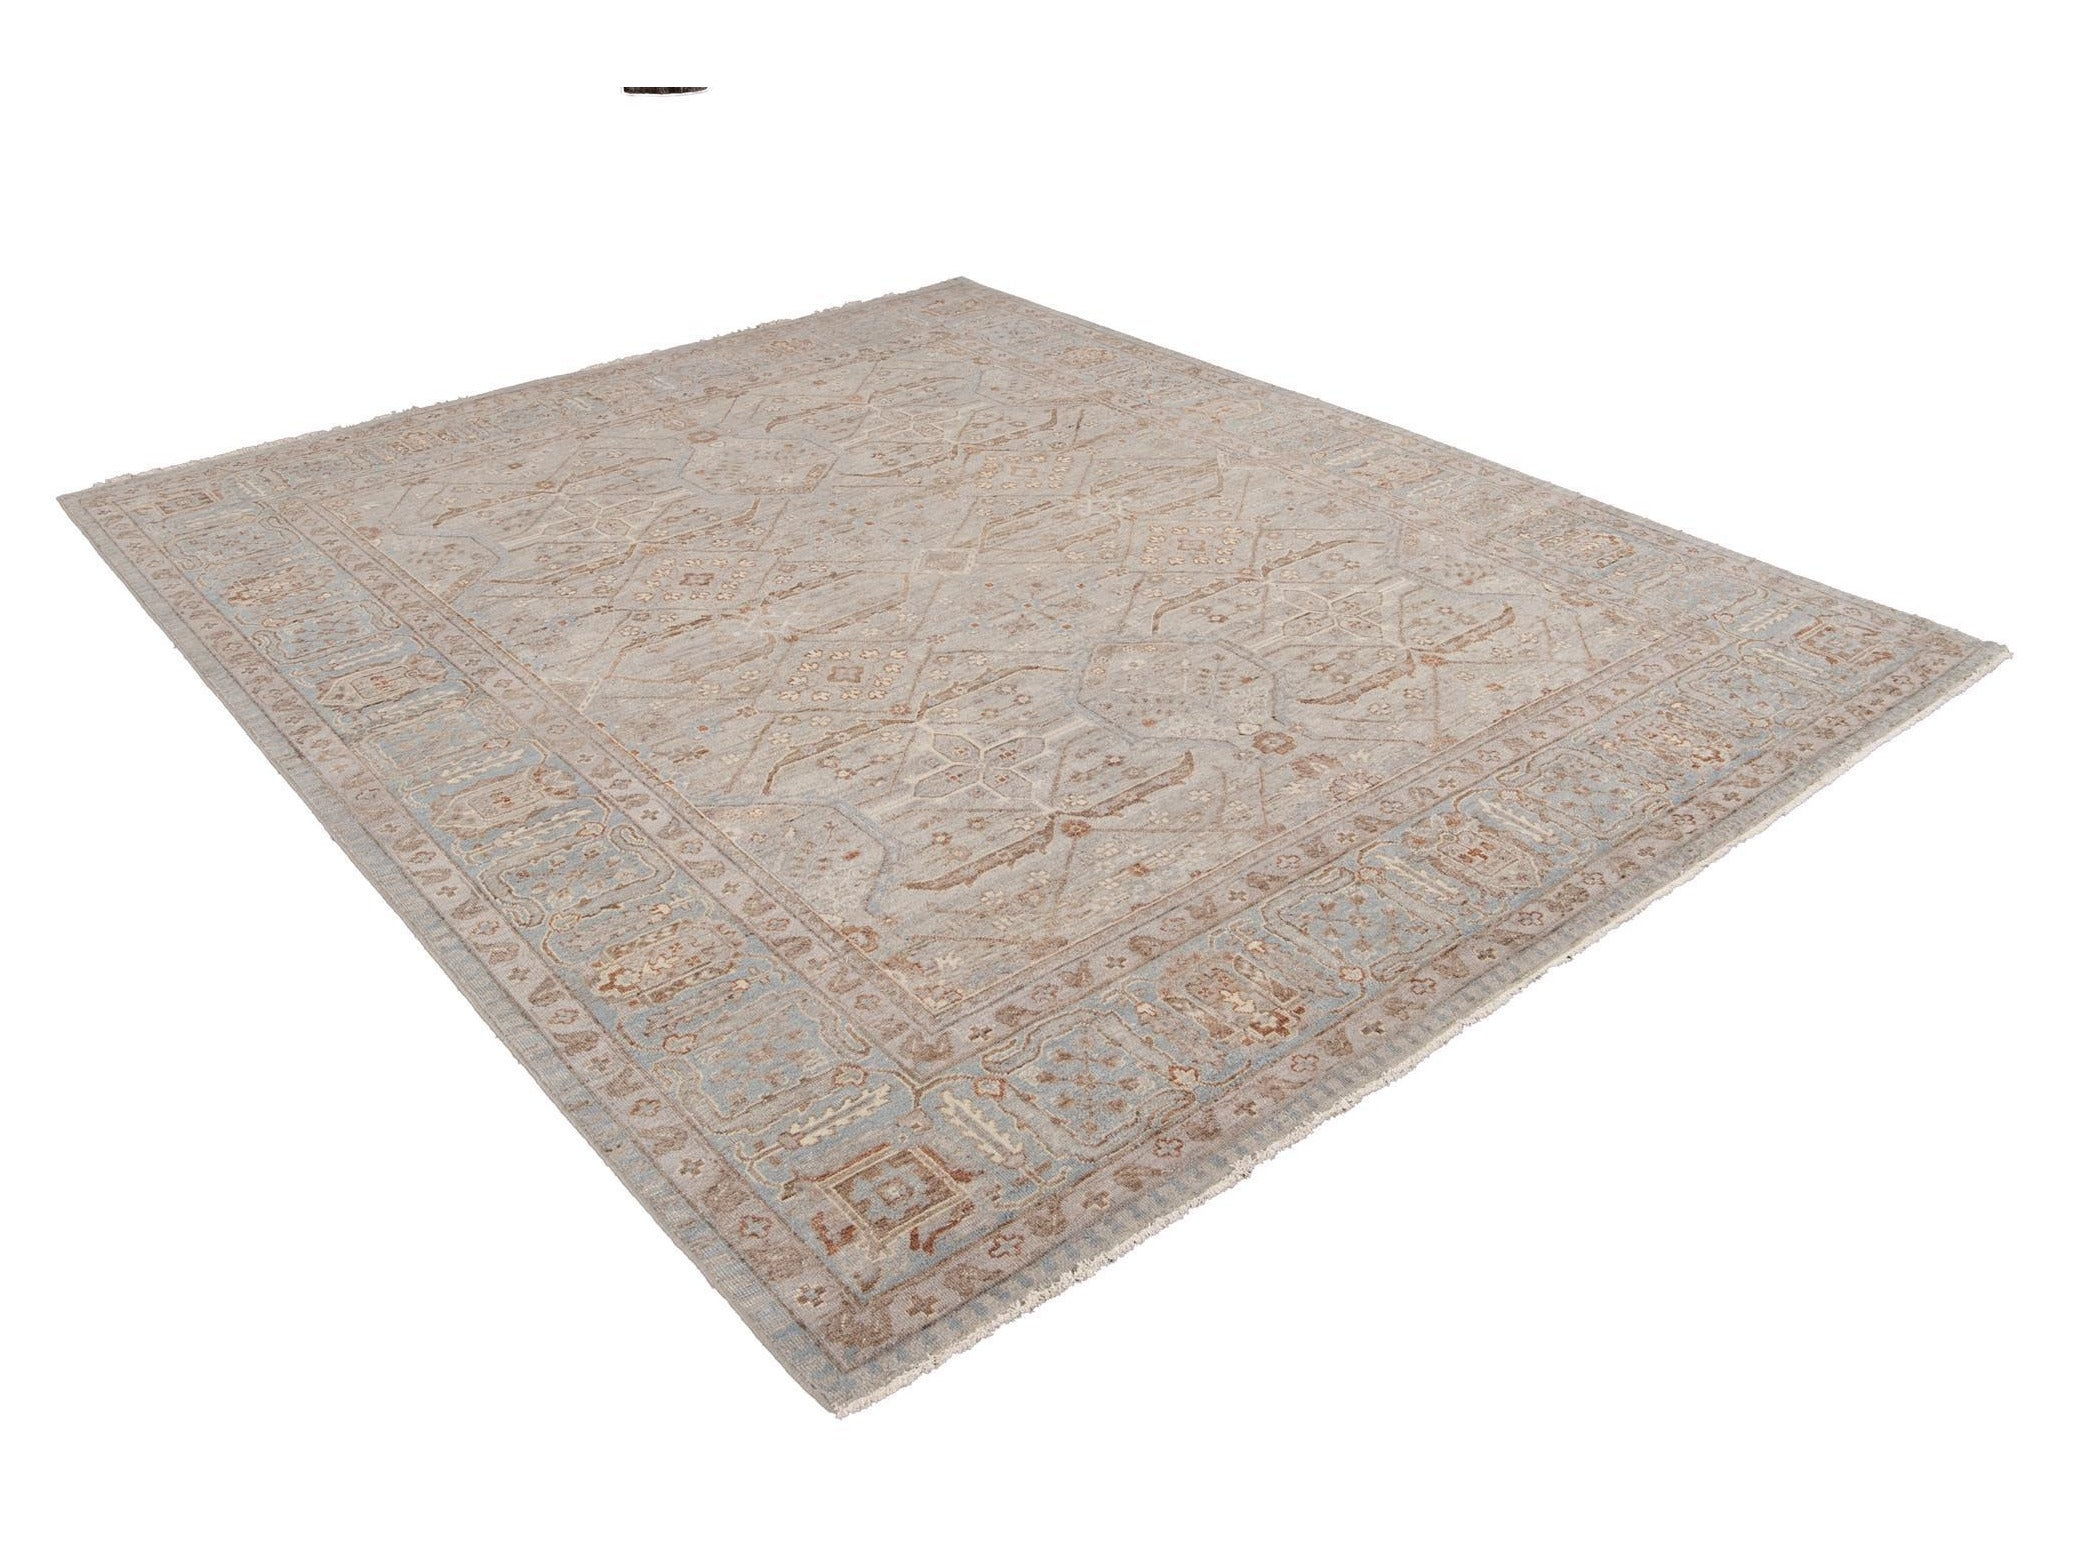 21st Century Modern Indian Wool Rug, 8 X 10